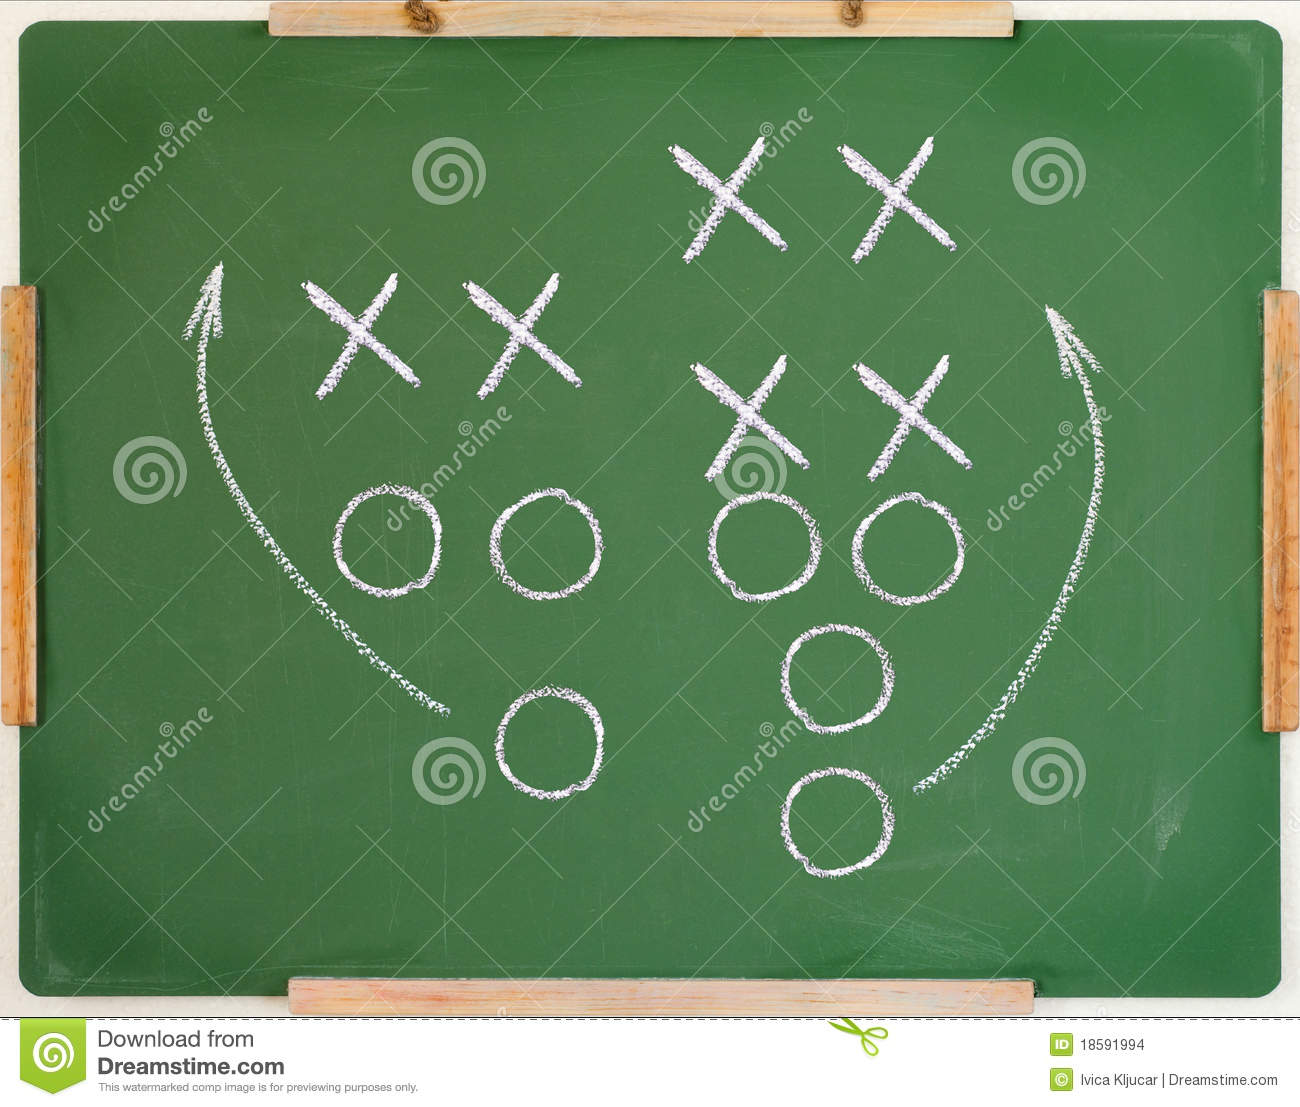 Learn to coach american football